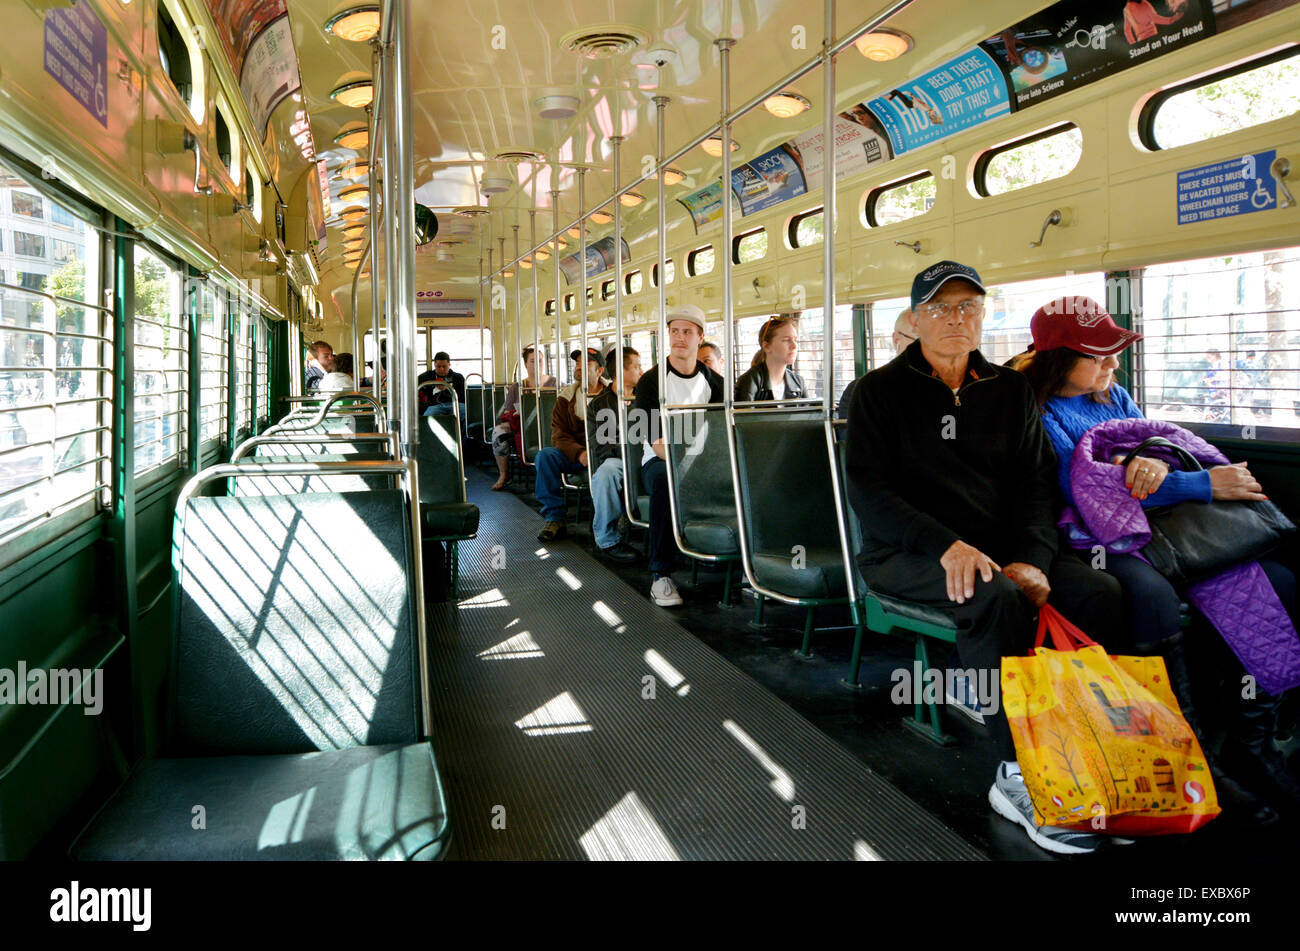 SAN FRANCISCO - MAY 15 2015:Passengers ride on San Francisco's original double-ended PCC streetcars.In ridership - Stock Image